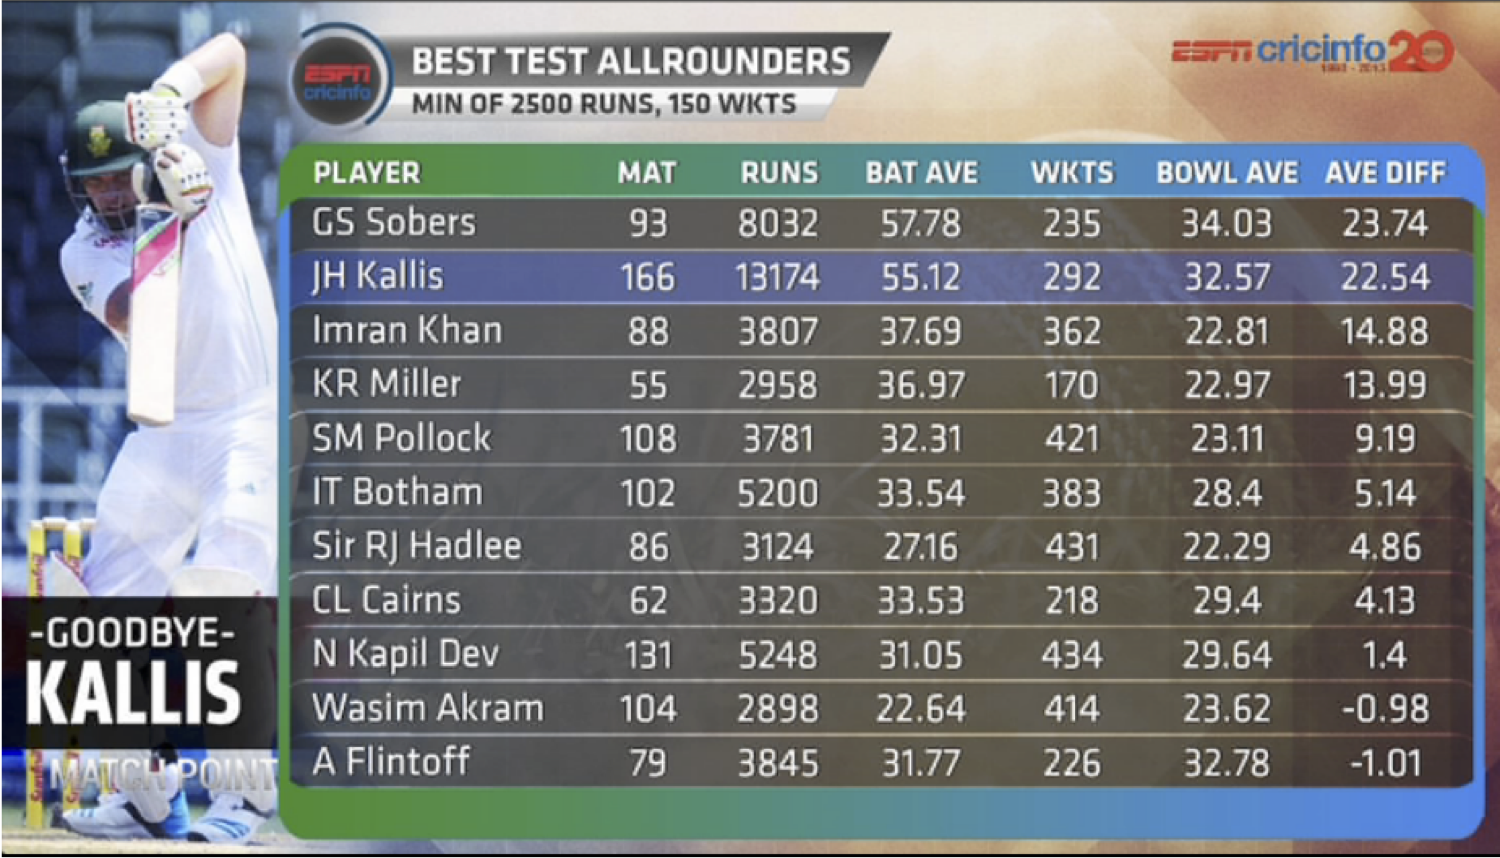 King Kallis The Greatest All Rounder In World Cricket